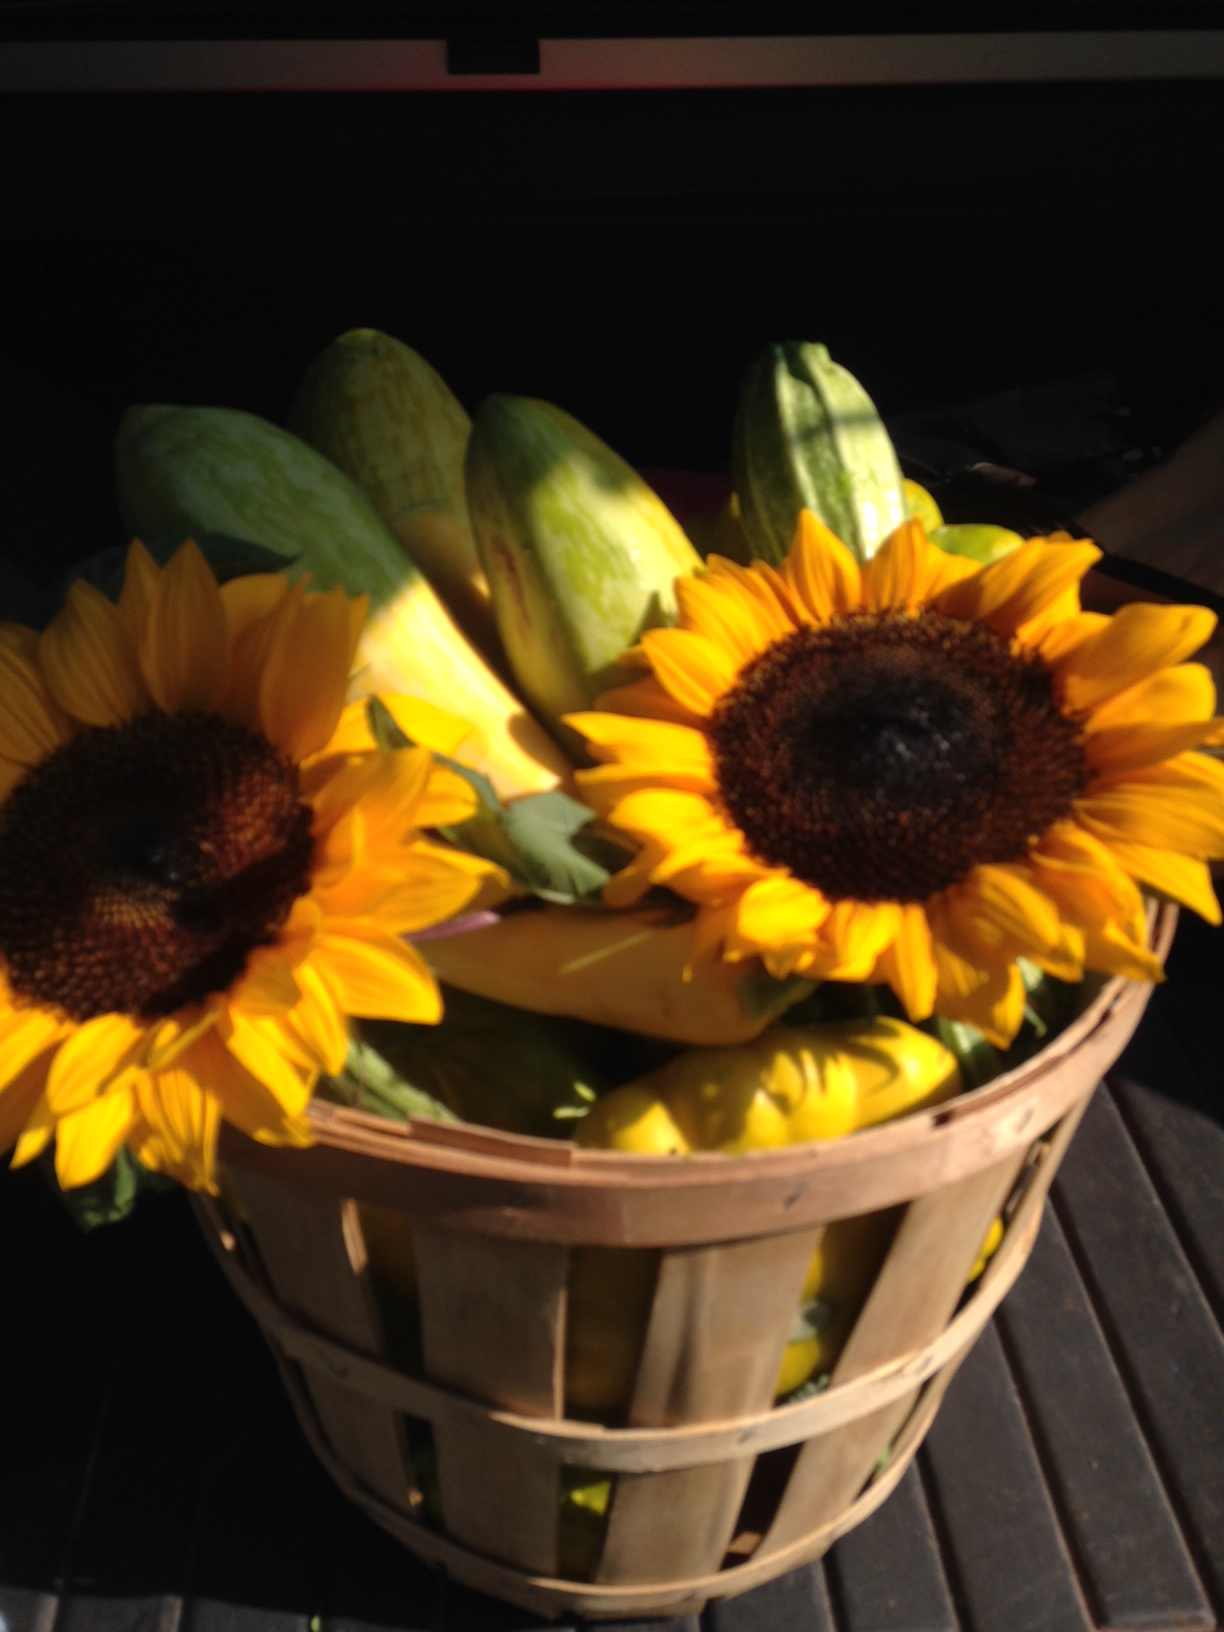 sunflowers in basket.jpg